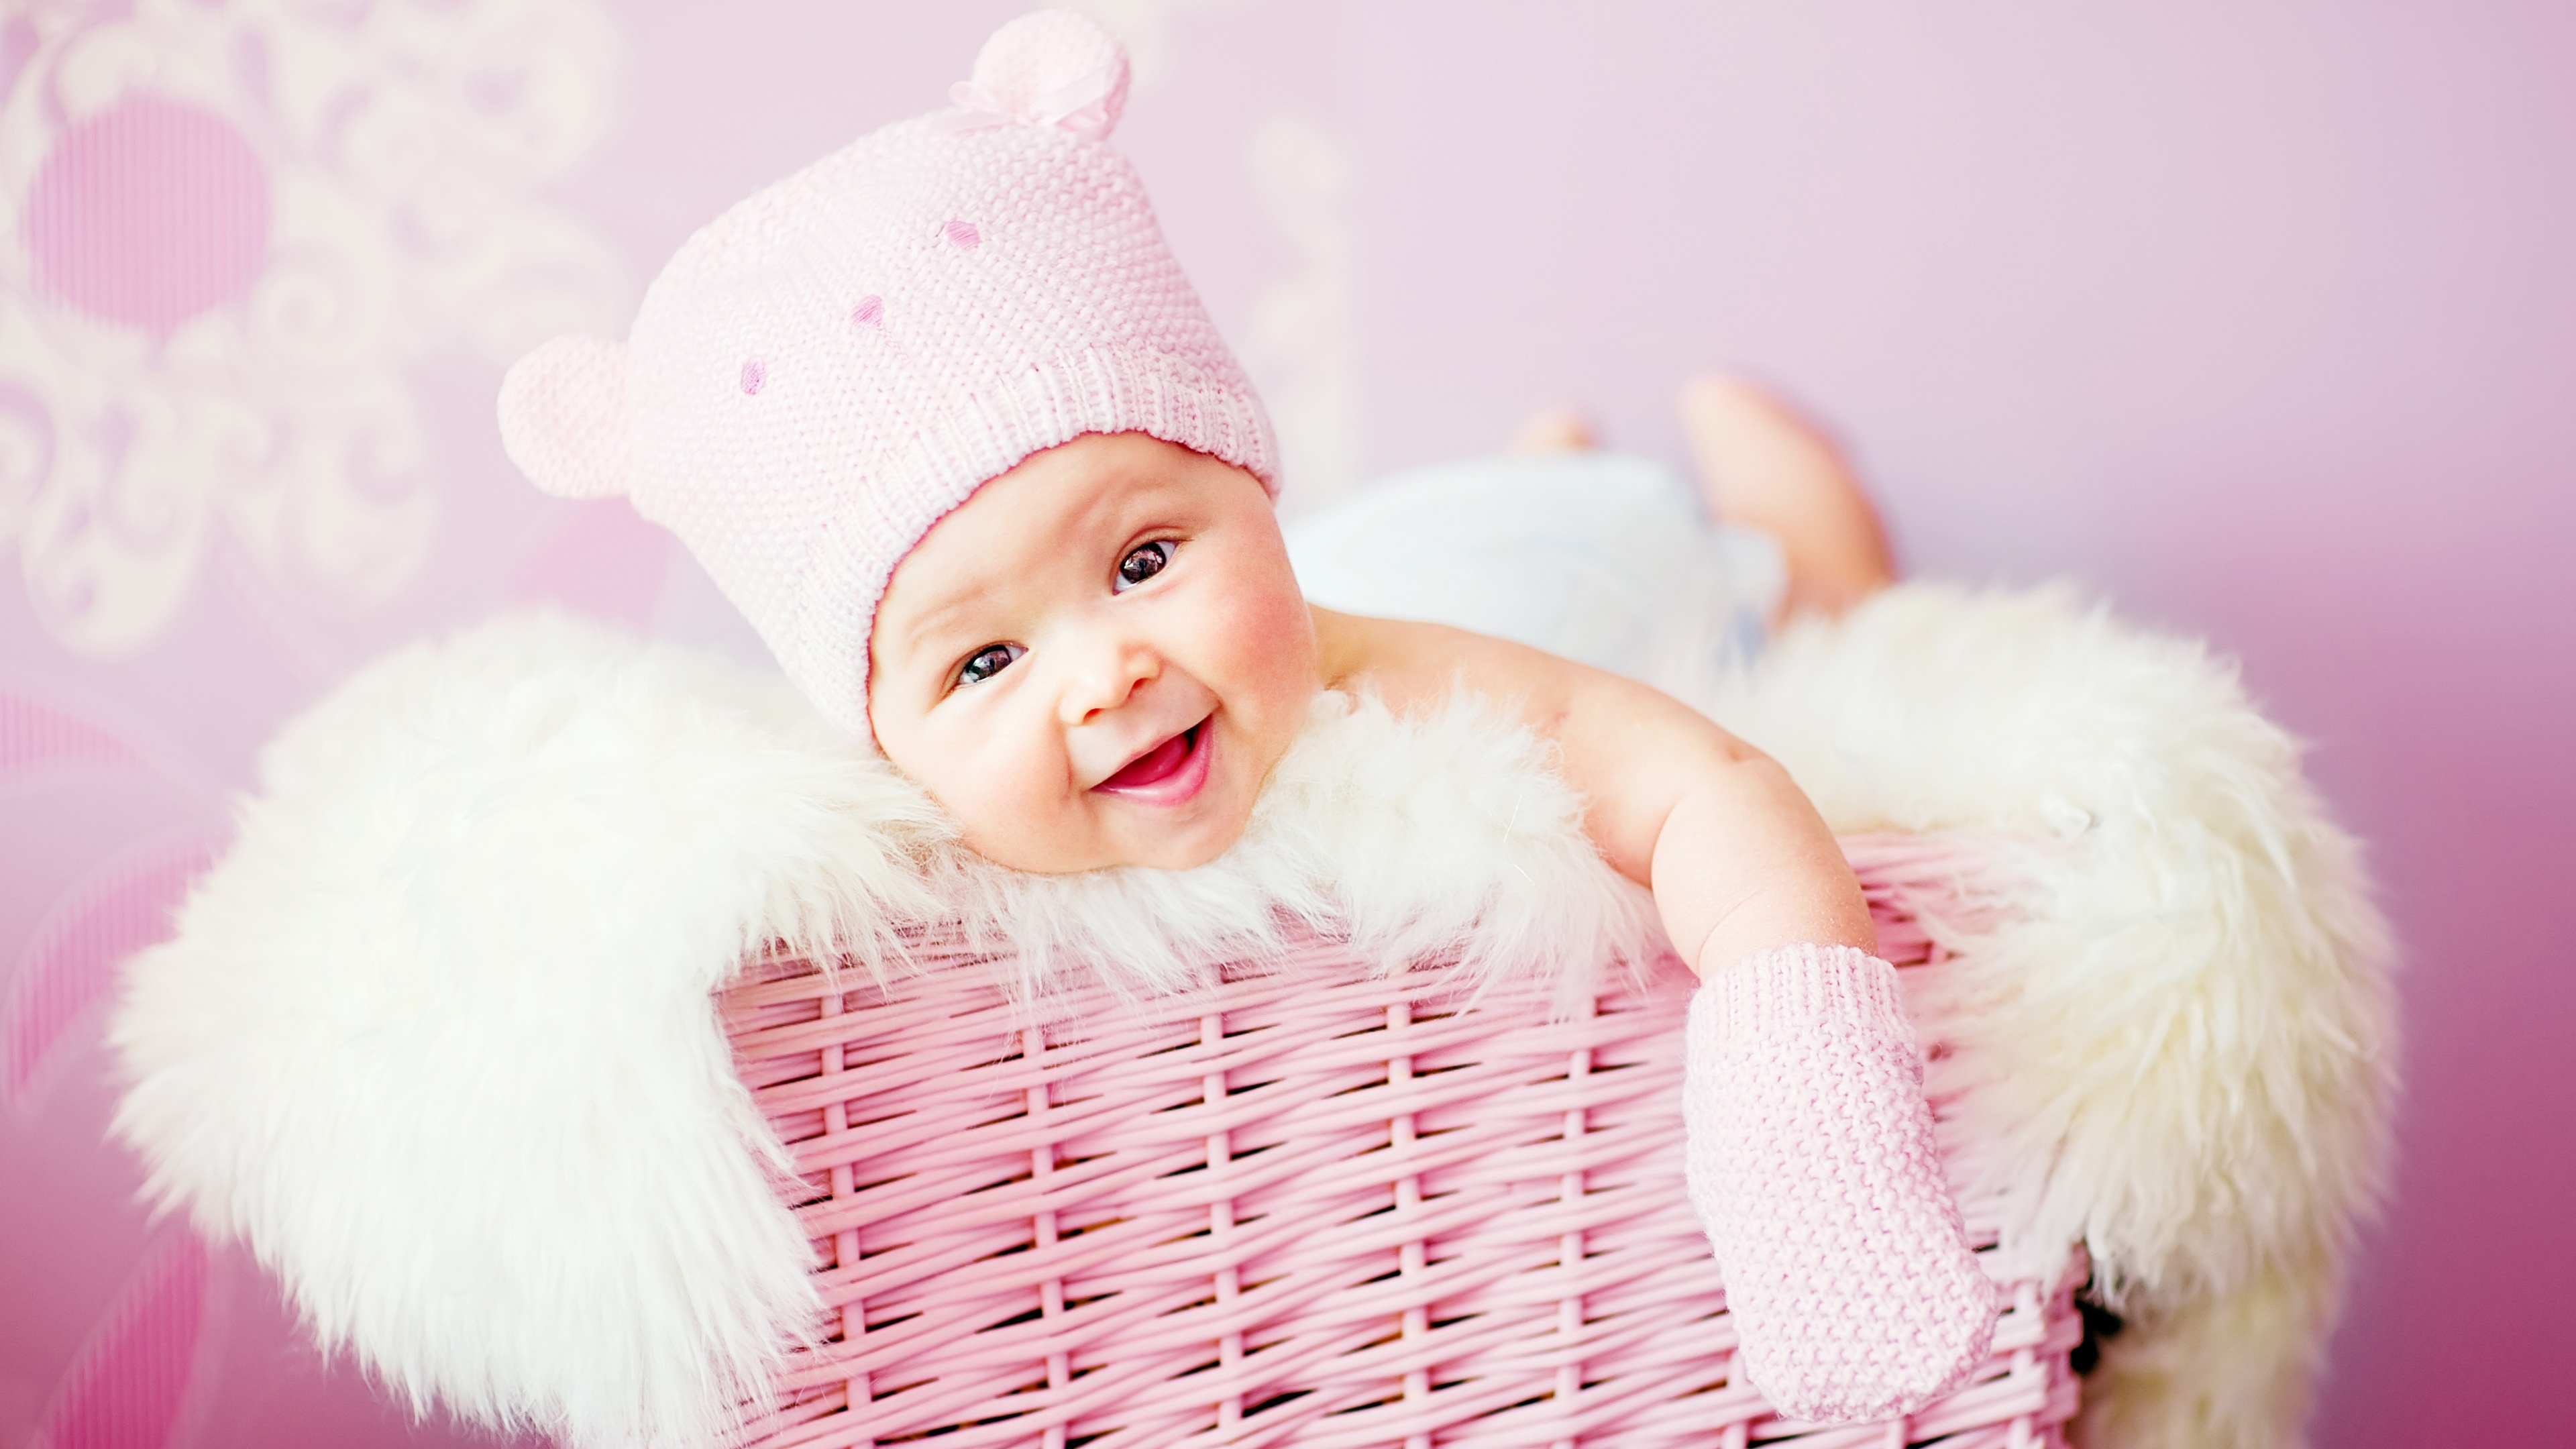 Cute wallpaper baby download wallpapers for free download about cute laughing baby voltagebd Gallery